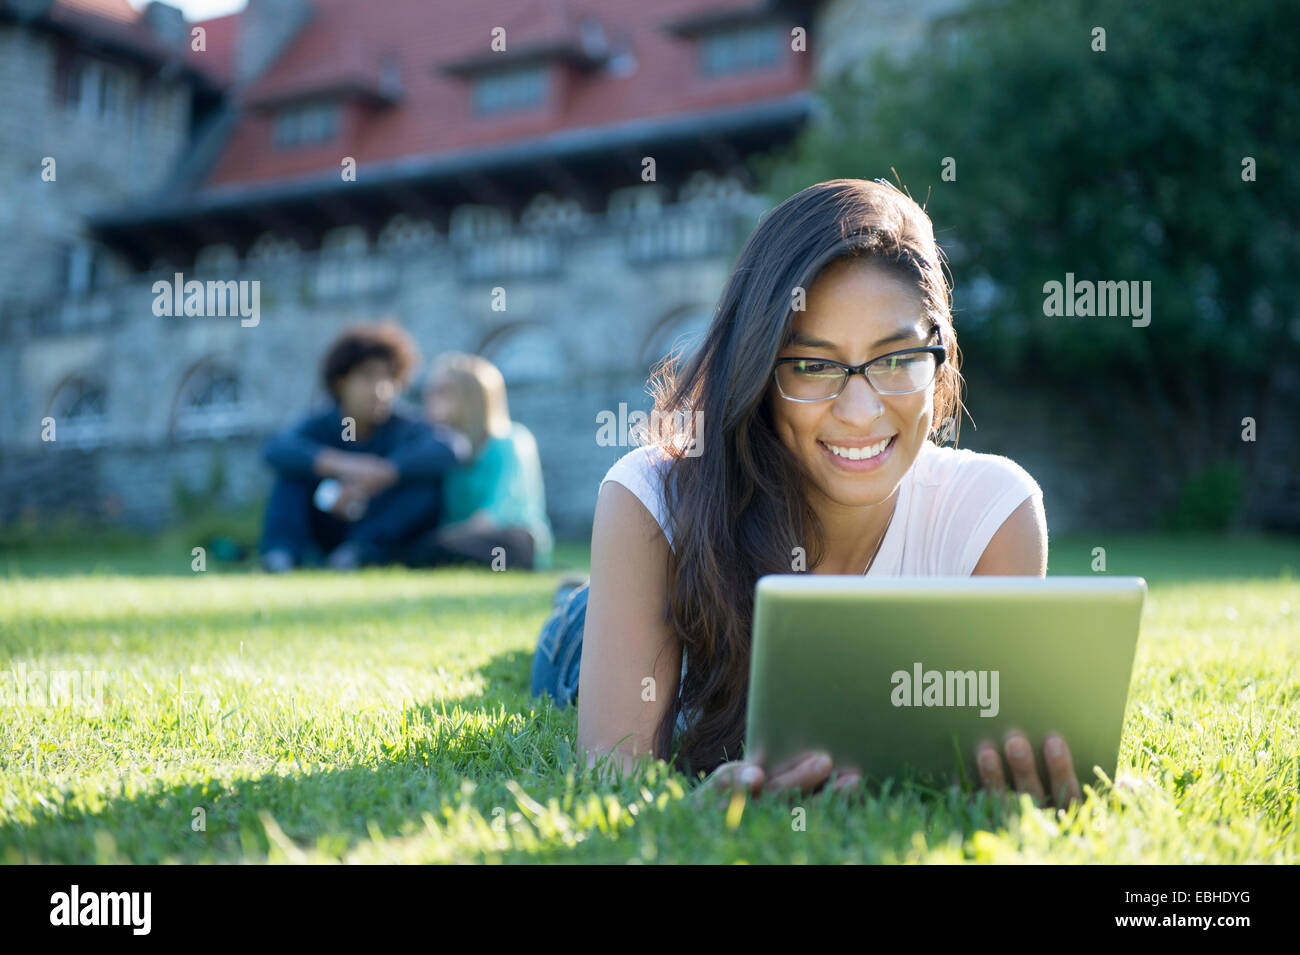 Young woman lying on grass using digital tablet - Stock Image